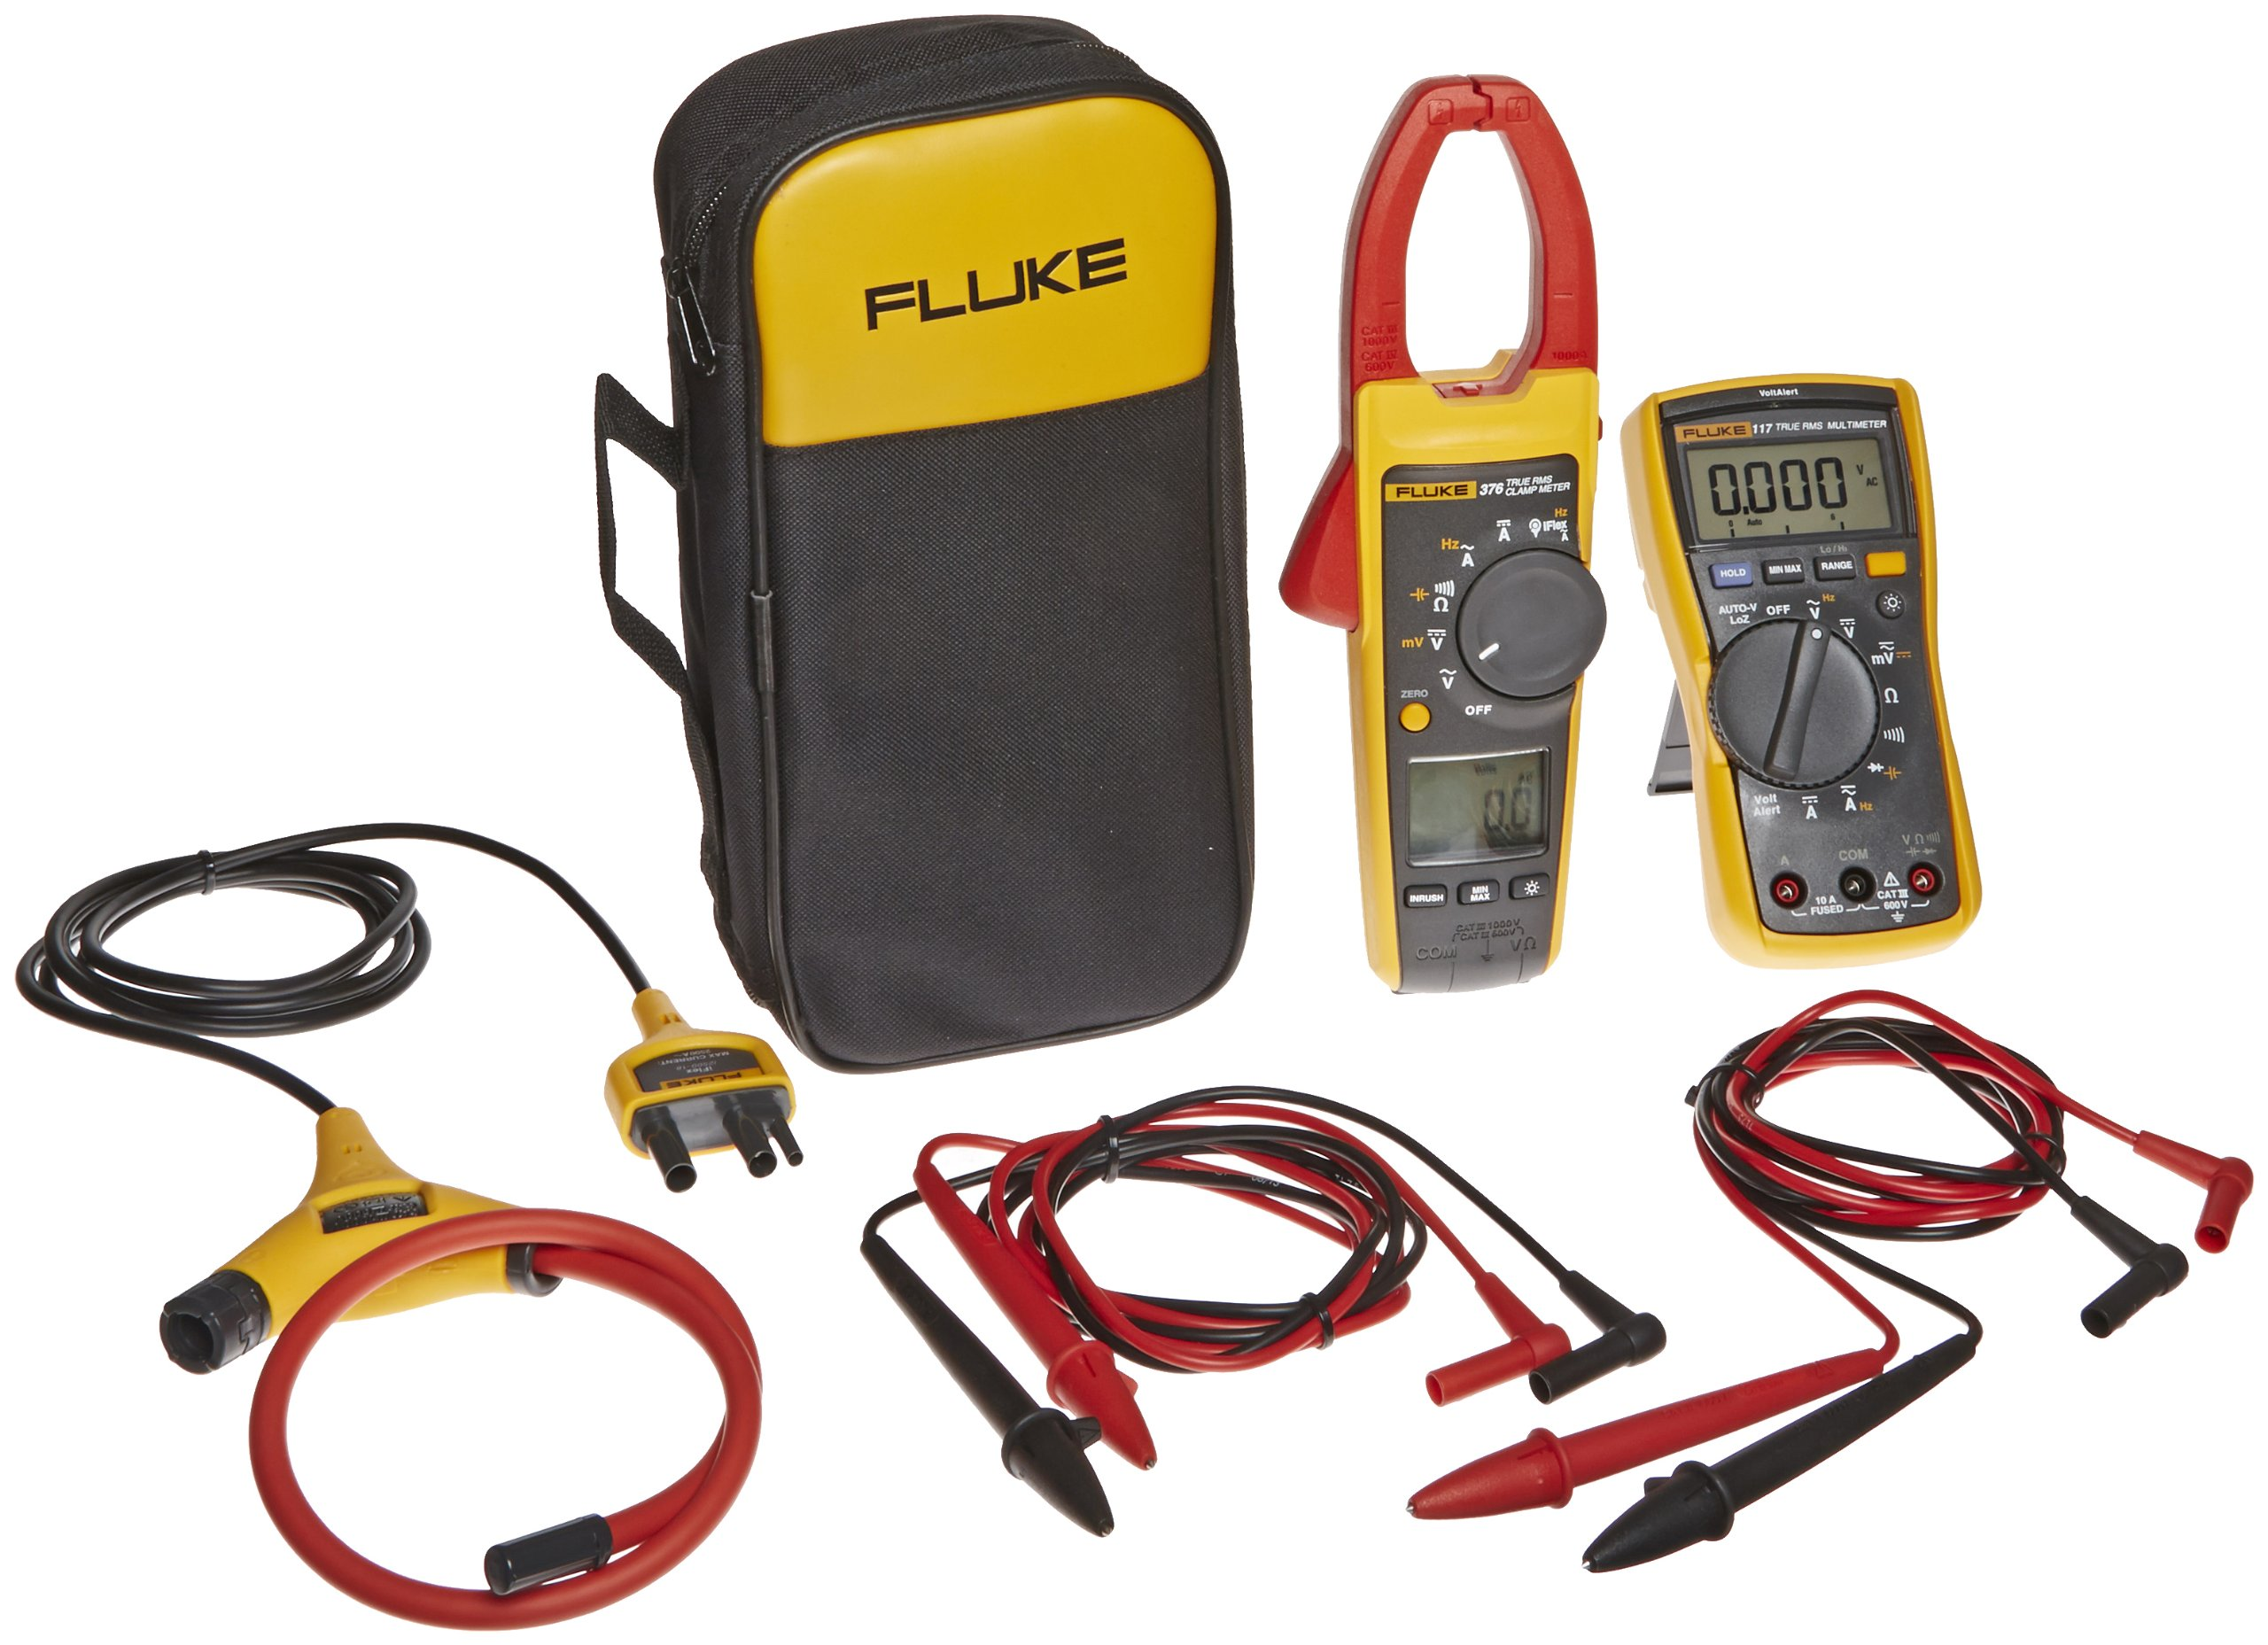 """Fluke VT04-ELEC-KIT Electrical Kit for Visual Infrared Thermometer, Includes IR Thermometer, Digital Multimeter, and True-RMS Clamp Meter."""